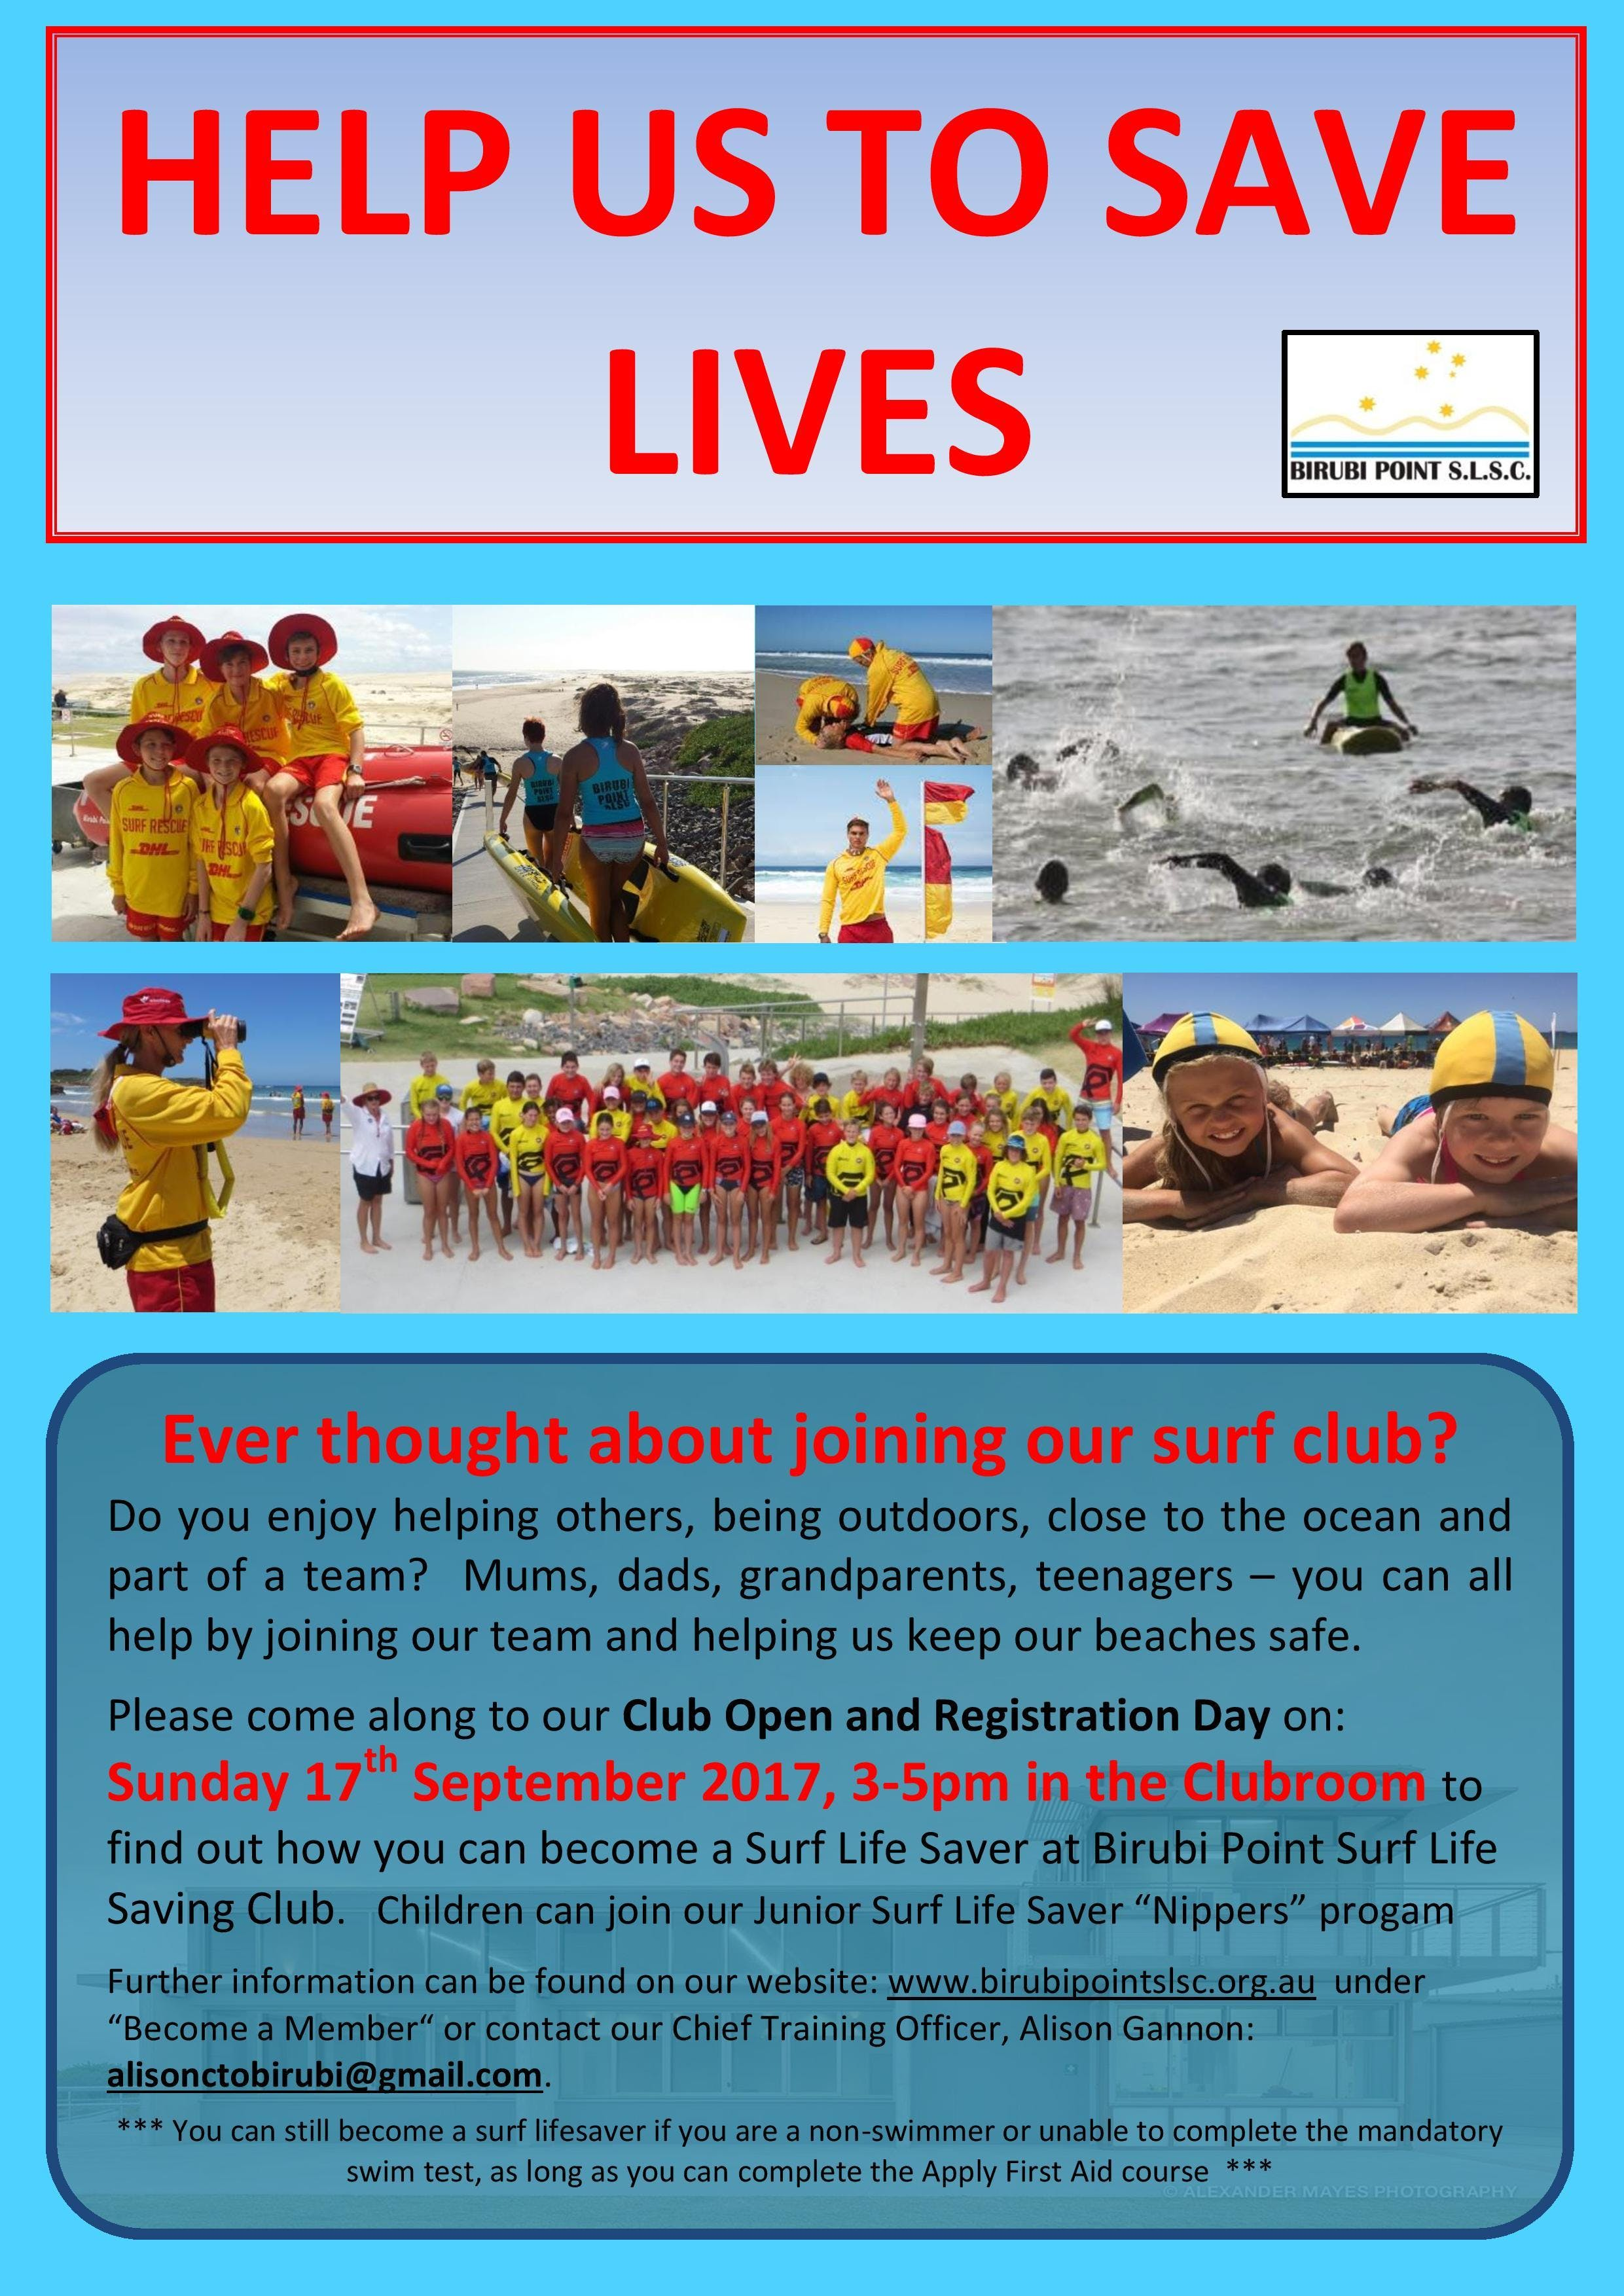 Join Our Surf Club Poster August 2017 Page 001 Jpg